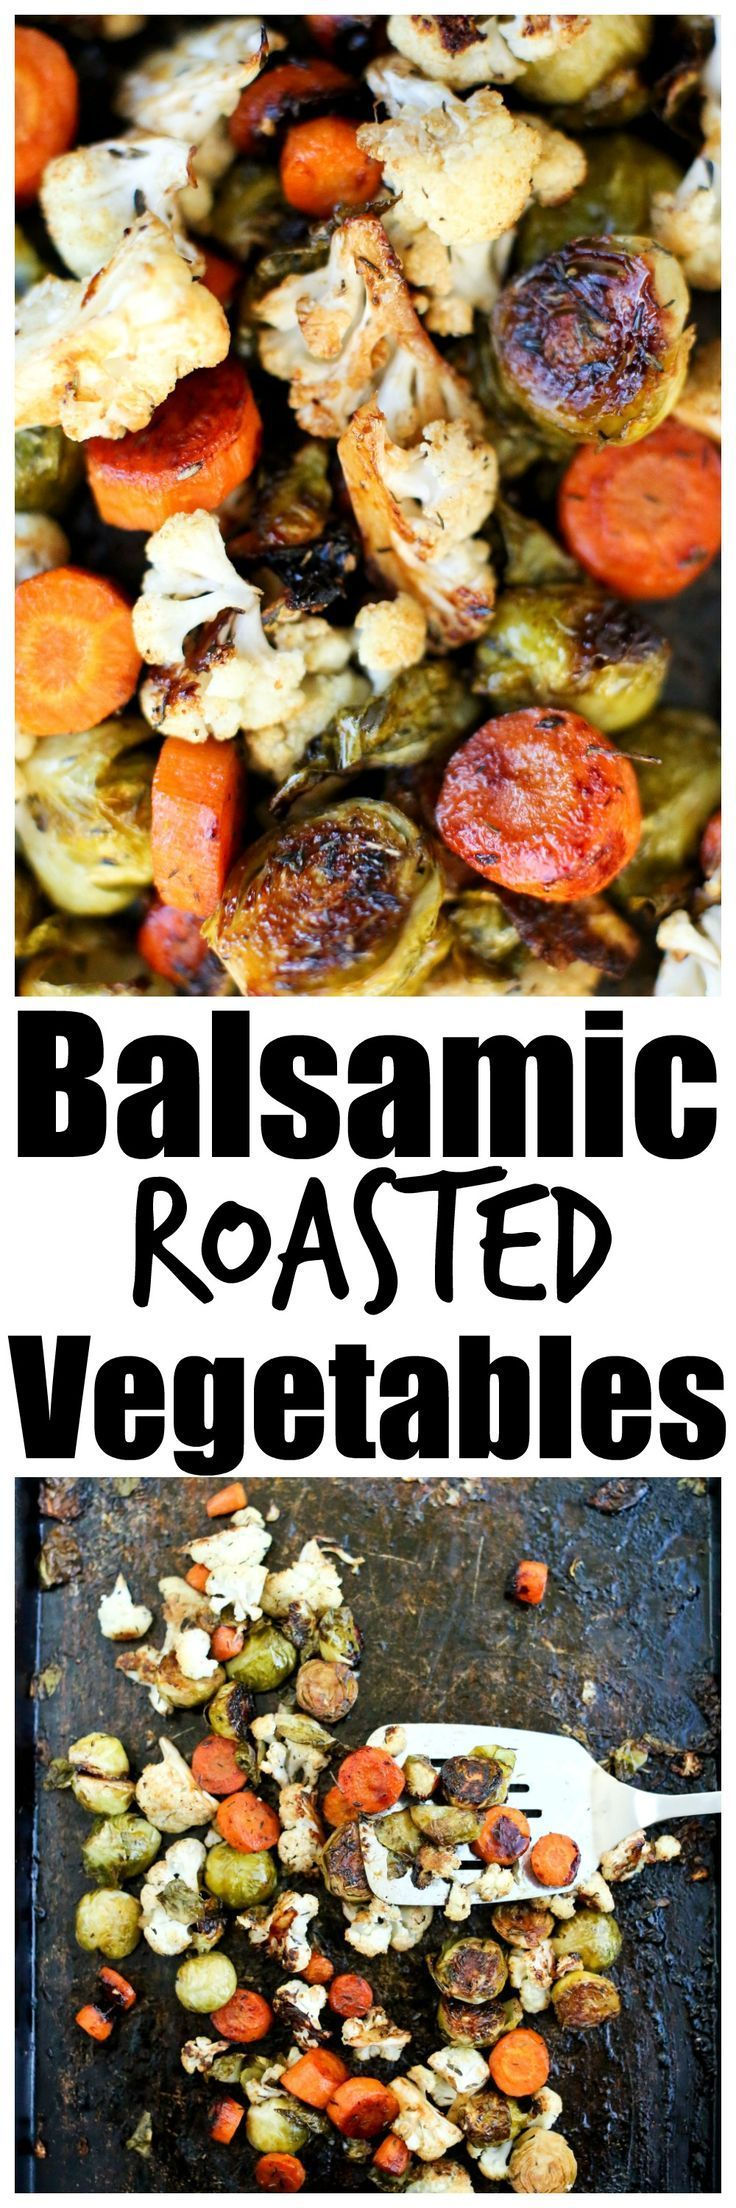 AMAZING flavor in these Balsamic Roasted Vegetables. Great healthy recipe for roasted brussels sprouts, carrots, and cauliflower. Vegetables never tasted so good as this side dish. via @Maryea Flaherty